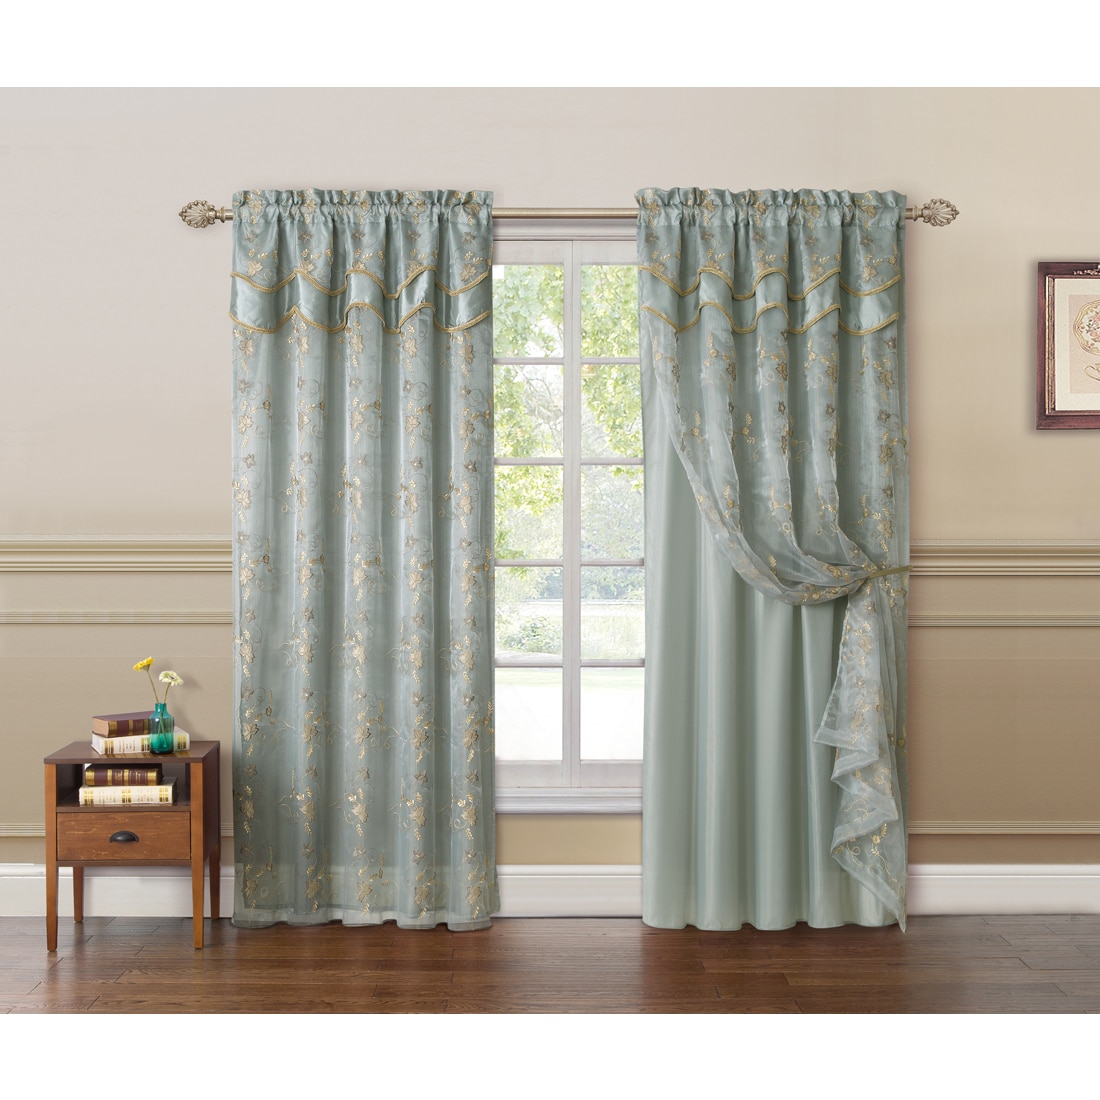 VCNY Charlize Embroidered Curtain Panel with Attached Valance and